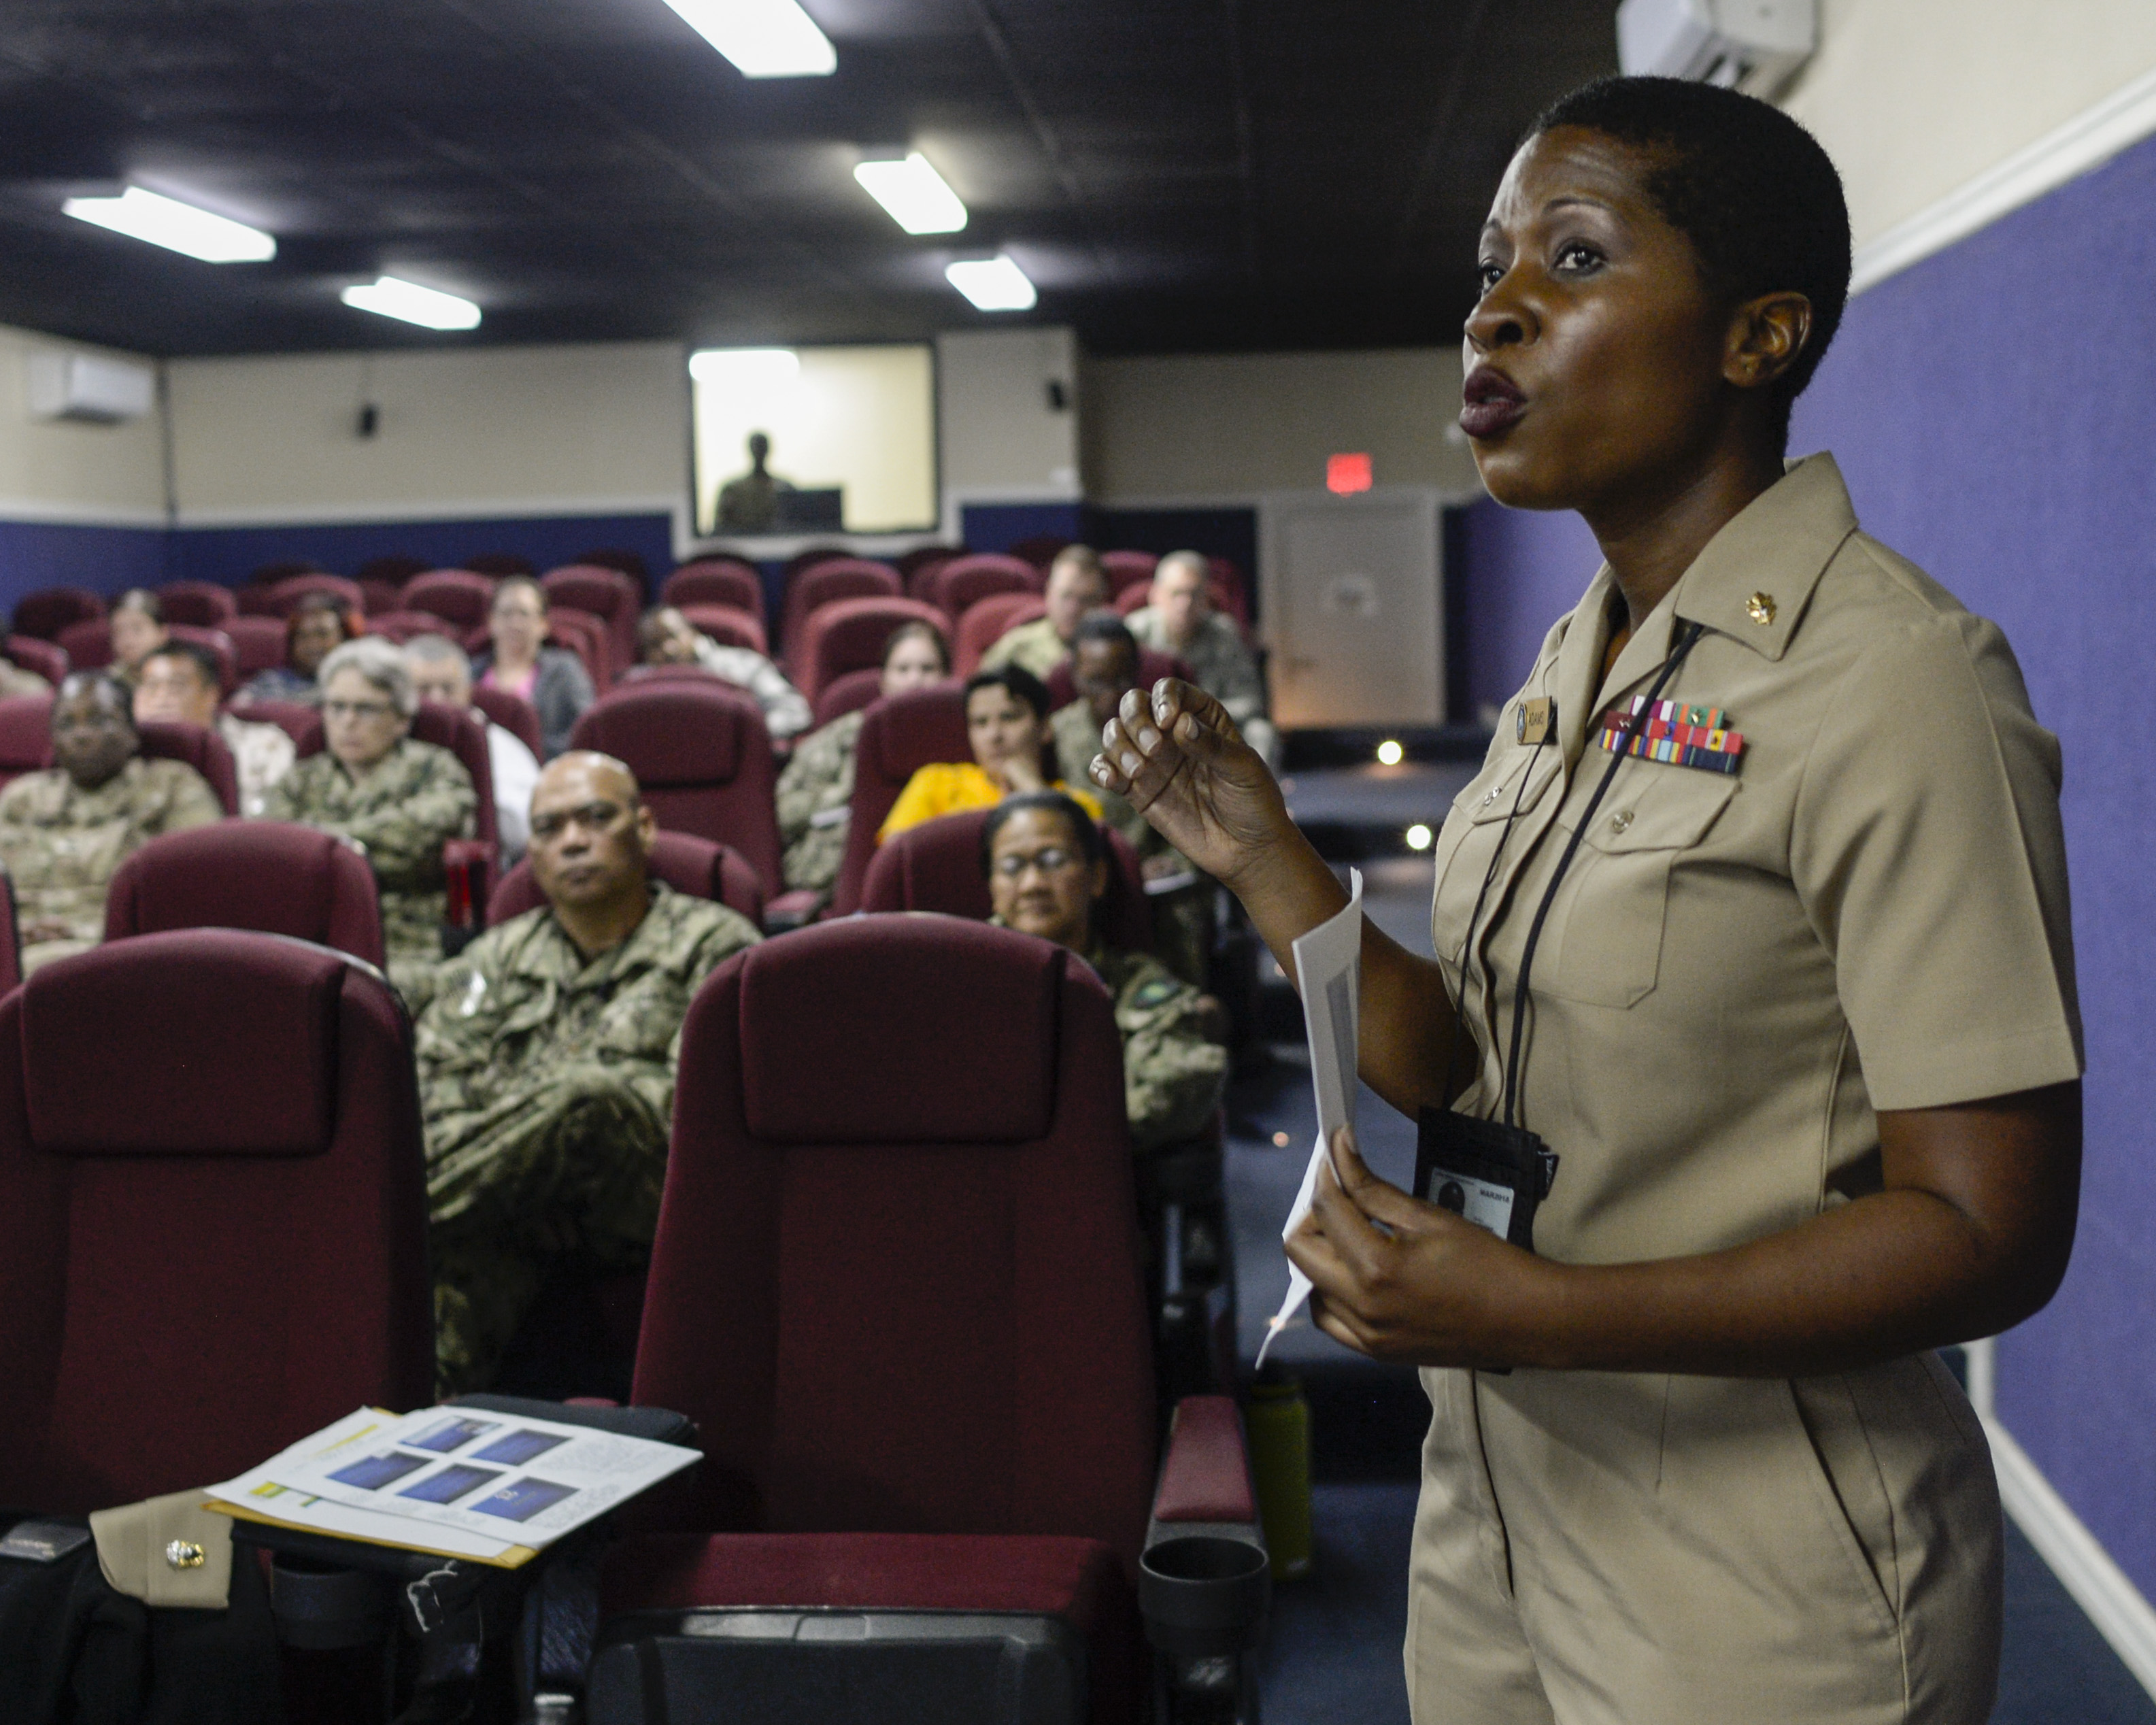 CAMP LEMONNIER, DJIBOUTI- Lt. Cmdr. Nehkonti Adams, Doctor, Internal Medicine and Infectious Diseases, details how traditional medicine interacts with modern medicine in the cultures of developing nations during the Tropical Military Medicine Course at Camp Lemonnier, 15 Nov. 2016.  The Tropical Medical course supports the operational needs of AFRICOM and the Special Operations Command and is a requirement for all medical professionals deploying to provide health care on the African continent.